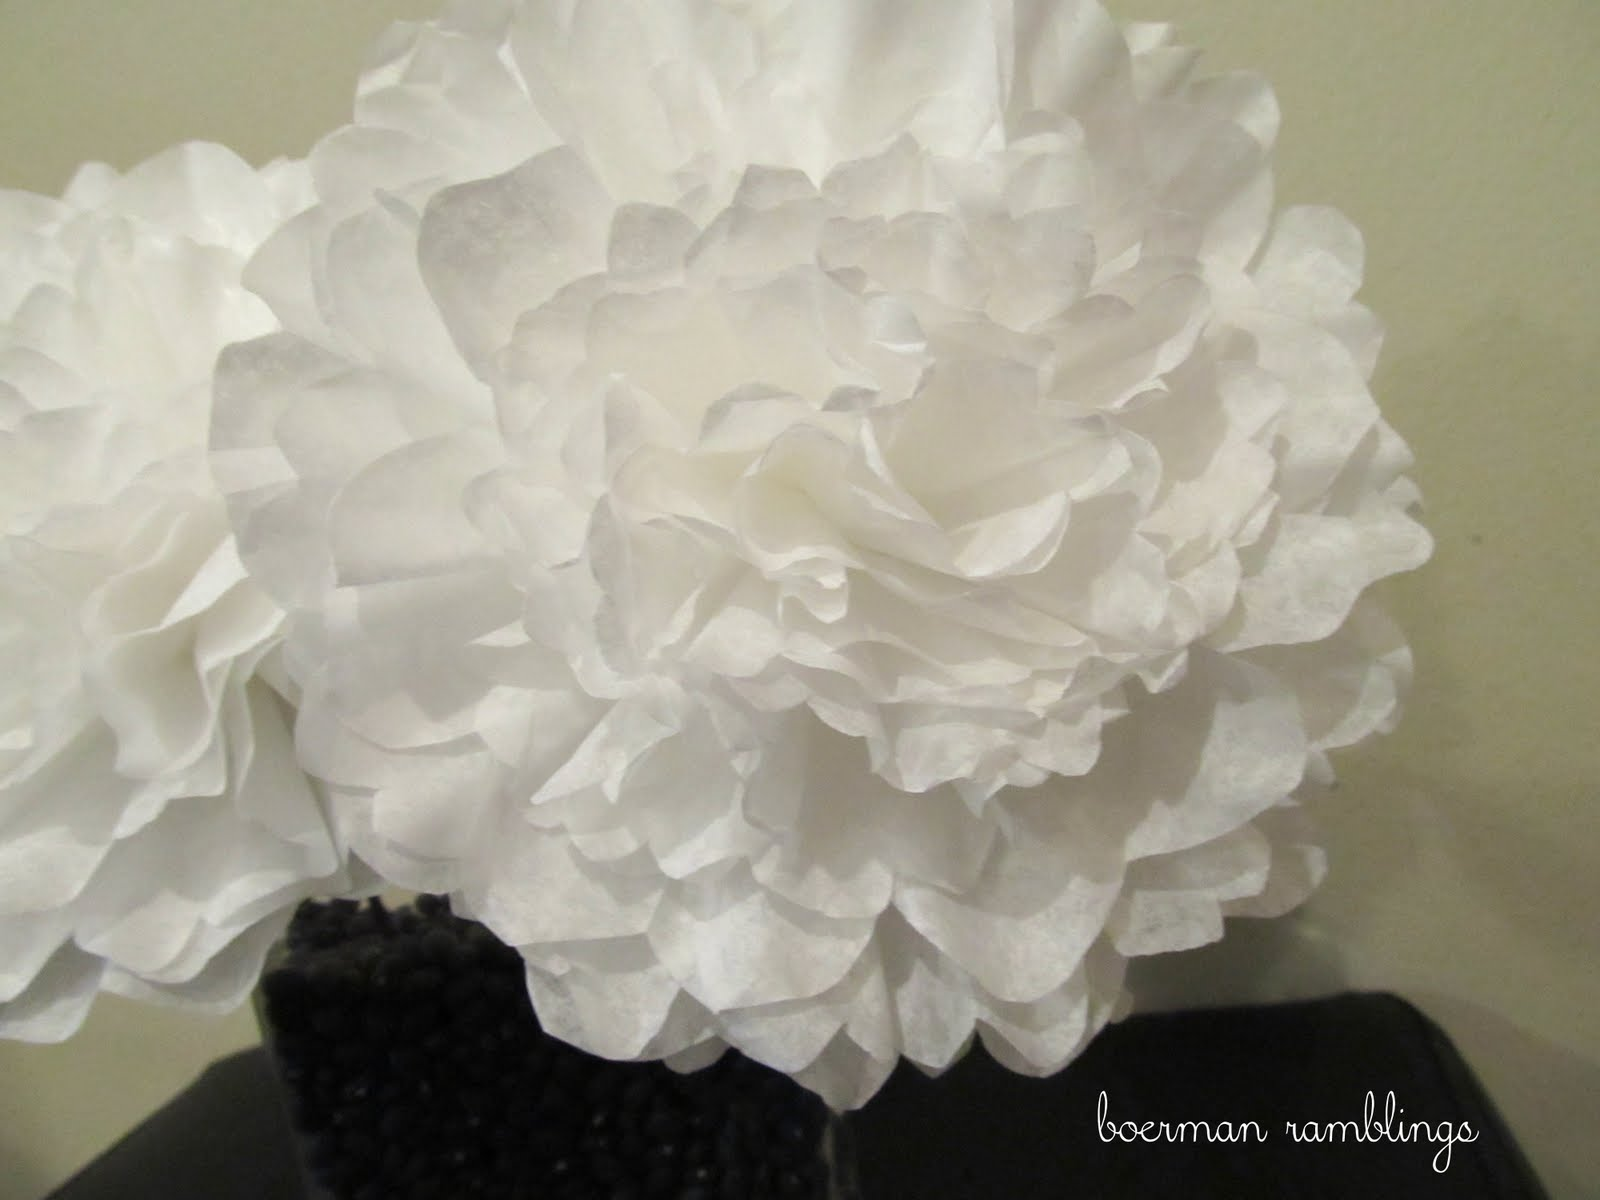 Coffee filters vs tissue paper or weddings why all the fuss tissue paper flowers are so yesterday coffee filter flowers are where its at mightylinksfo Images